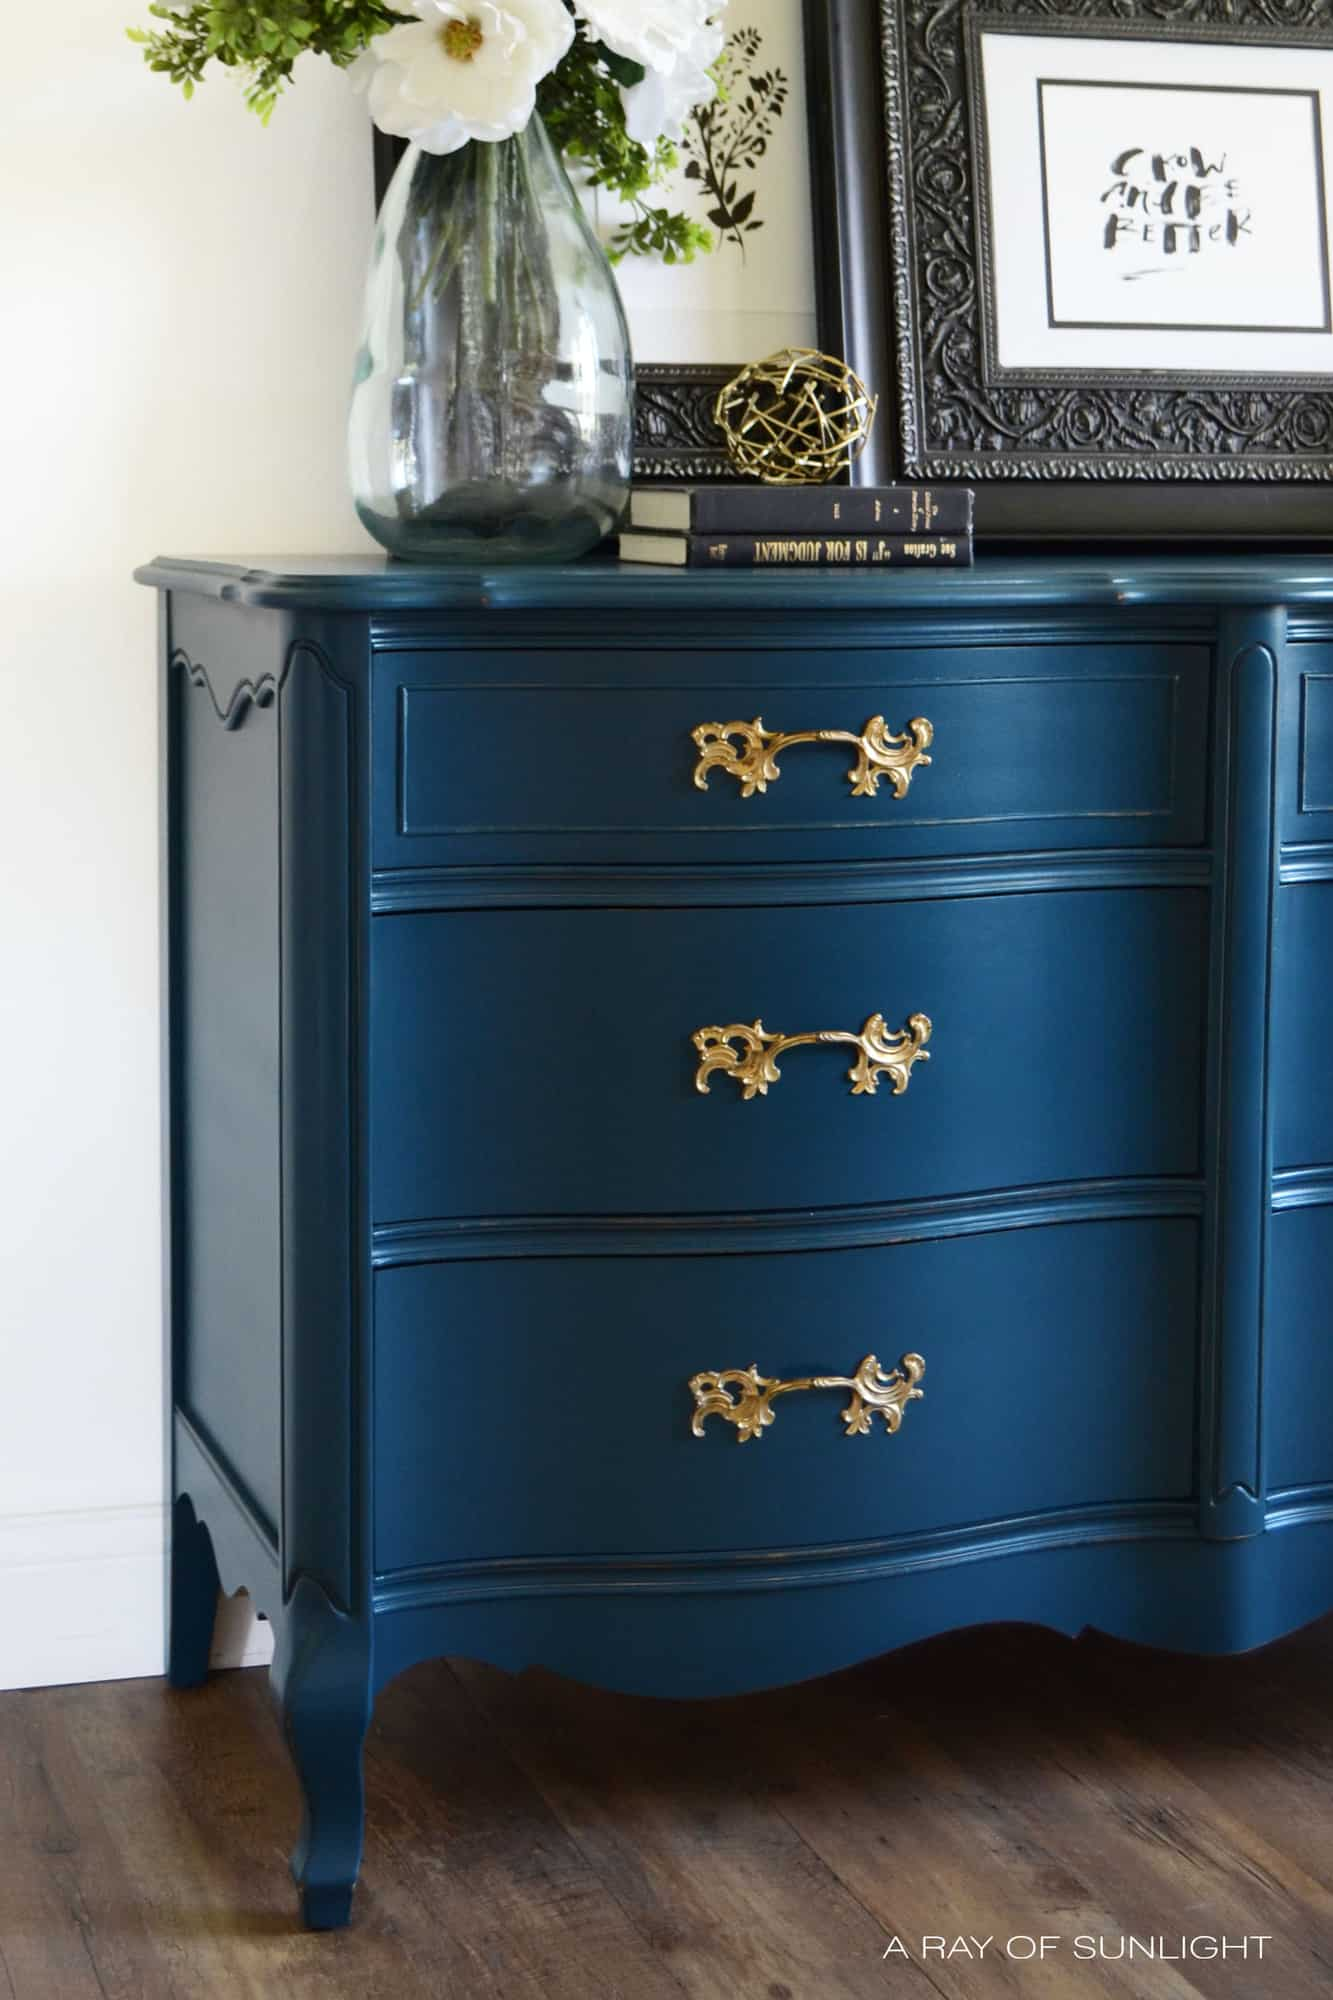 Learn How To Create This Navy Blue Finish With Antique Gold Hardware For Your Own Diy